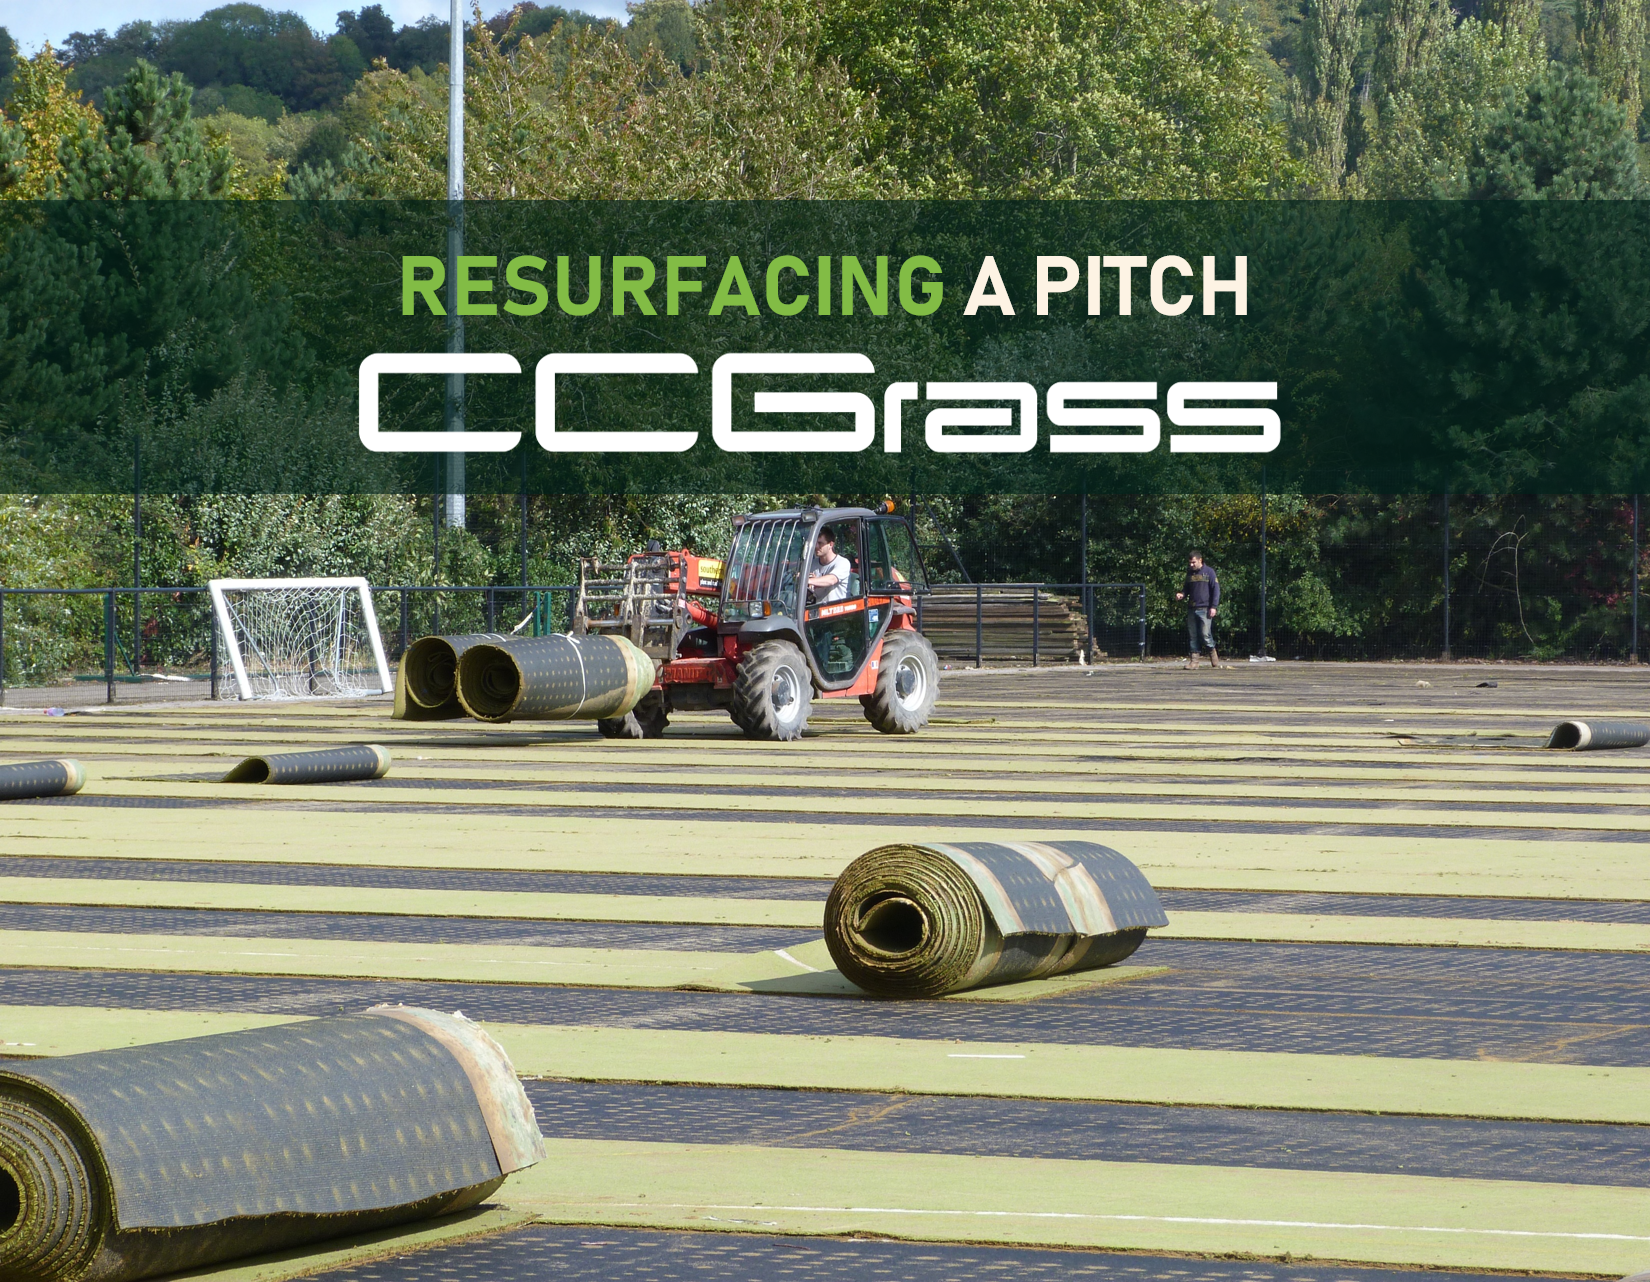 Top 20 tips for building the artificial grass perfect pitch 18